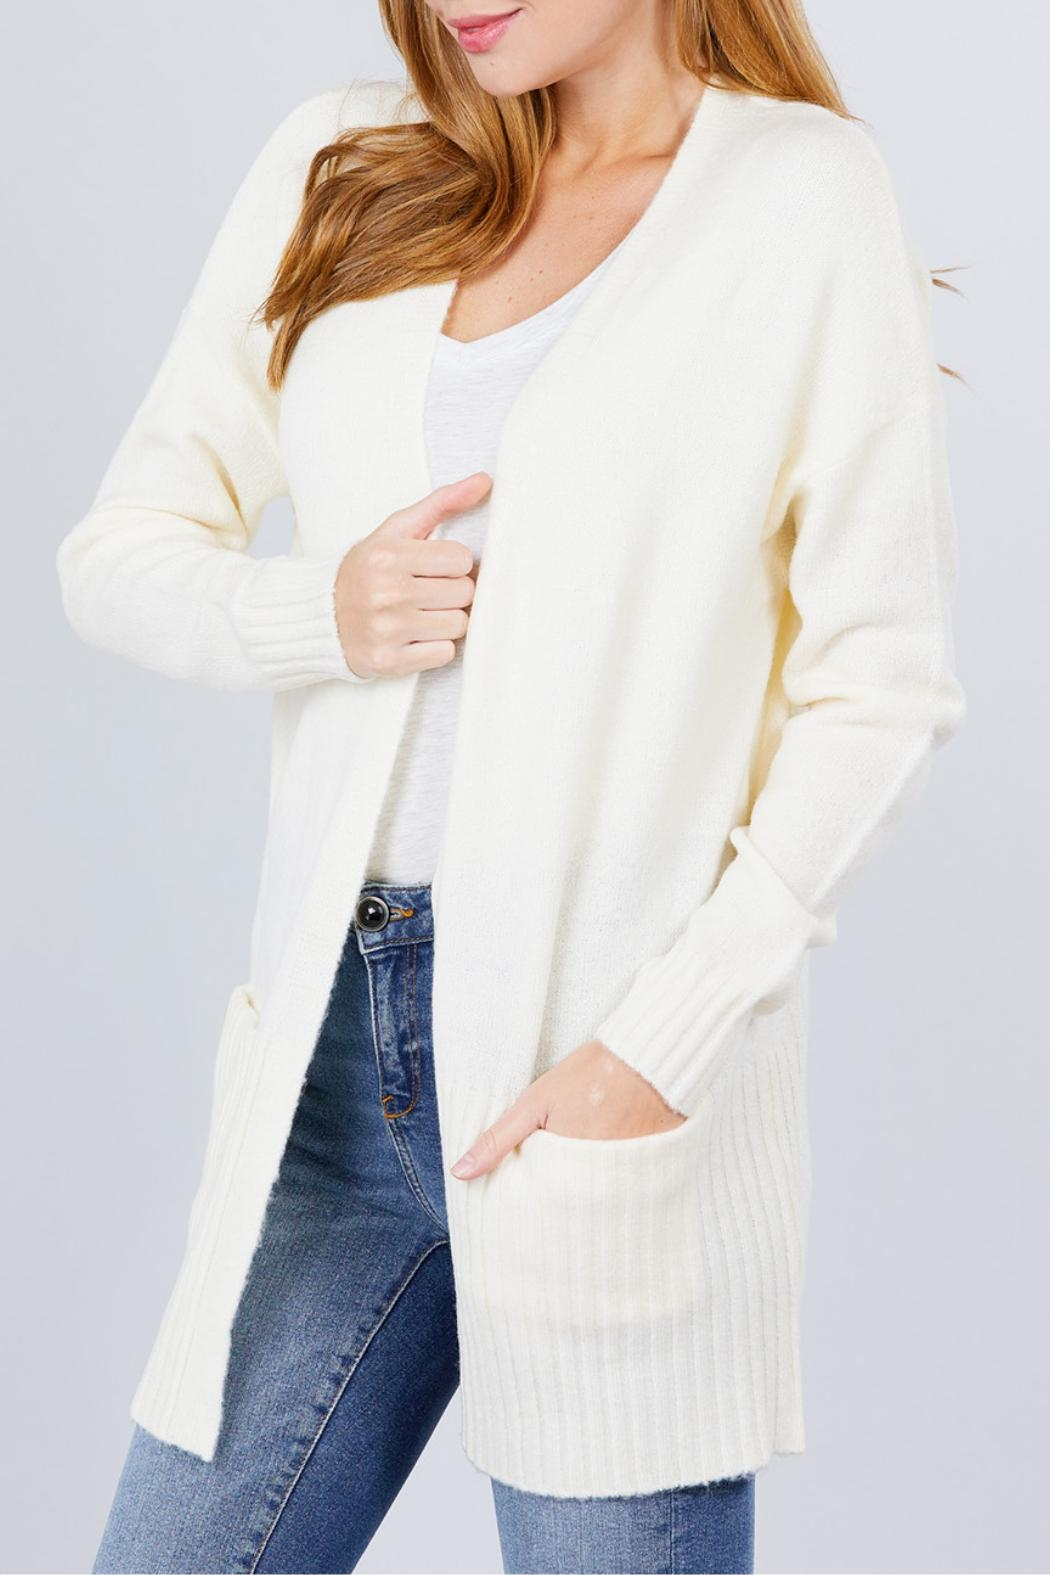 Active USA Ivory Open-Front Cardigan - Front Full Image